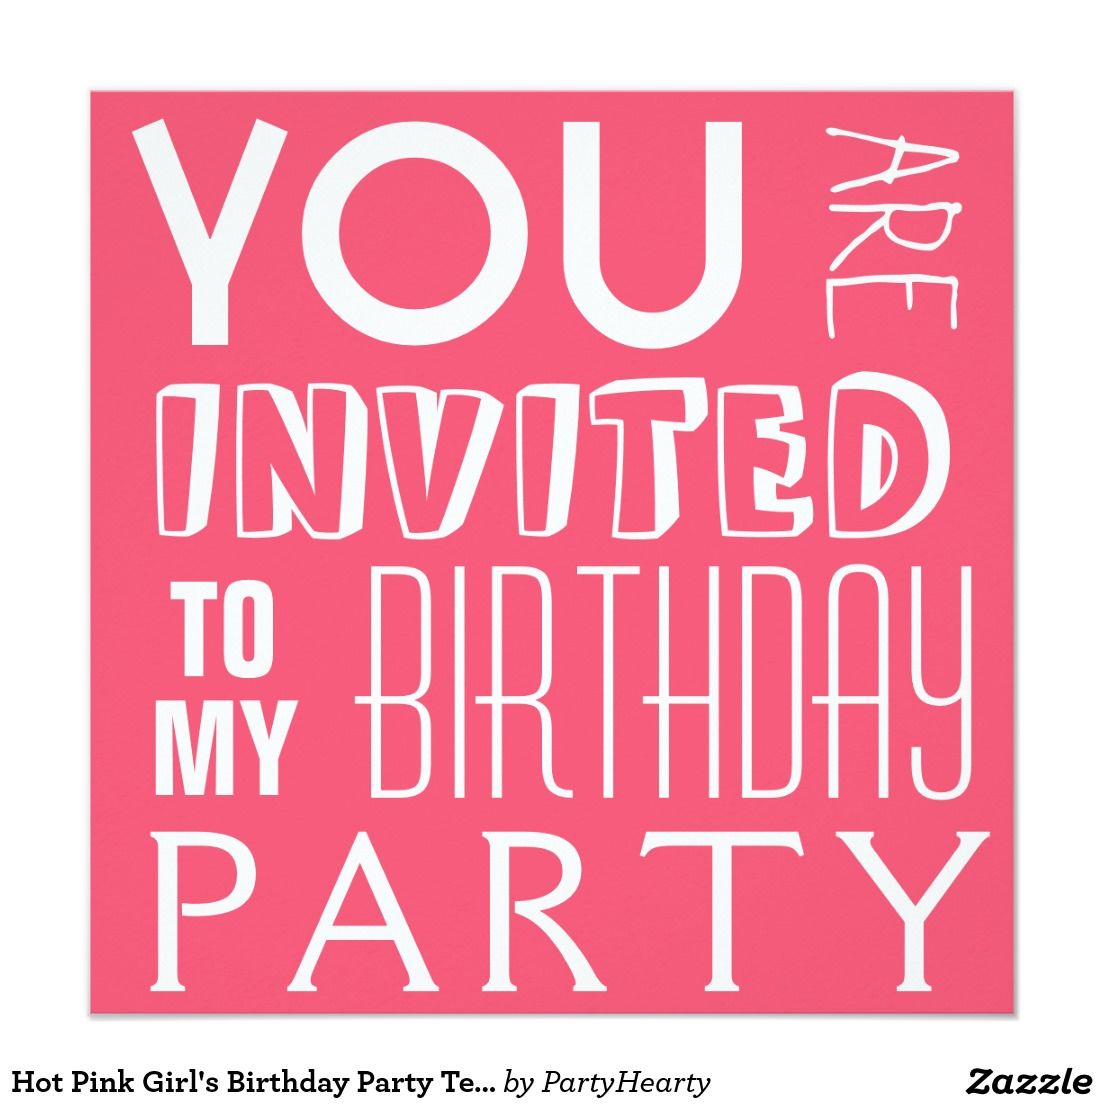 Beautiful Girl Invitations Birthday Party Image - Invitations and ...